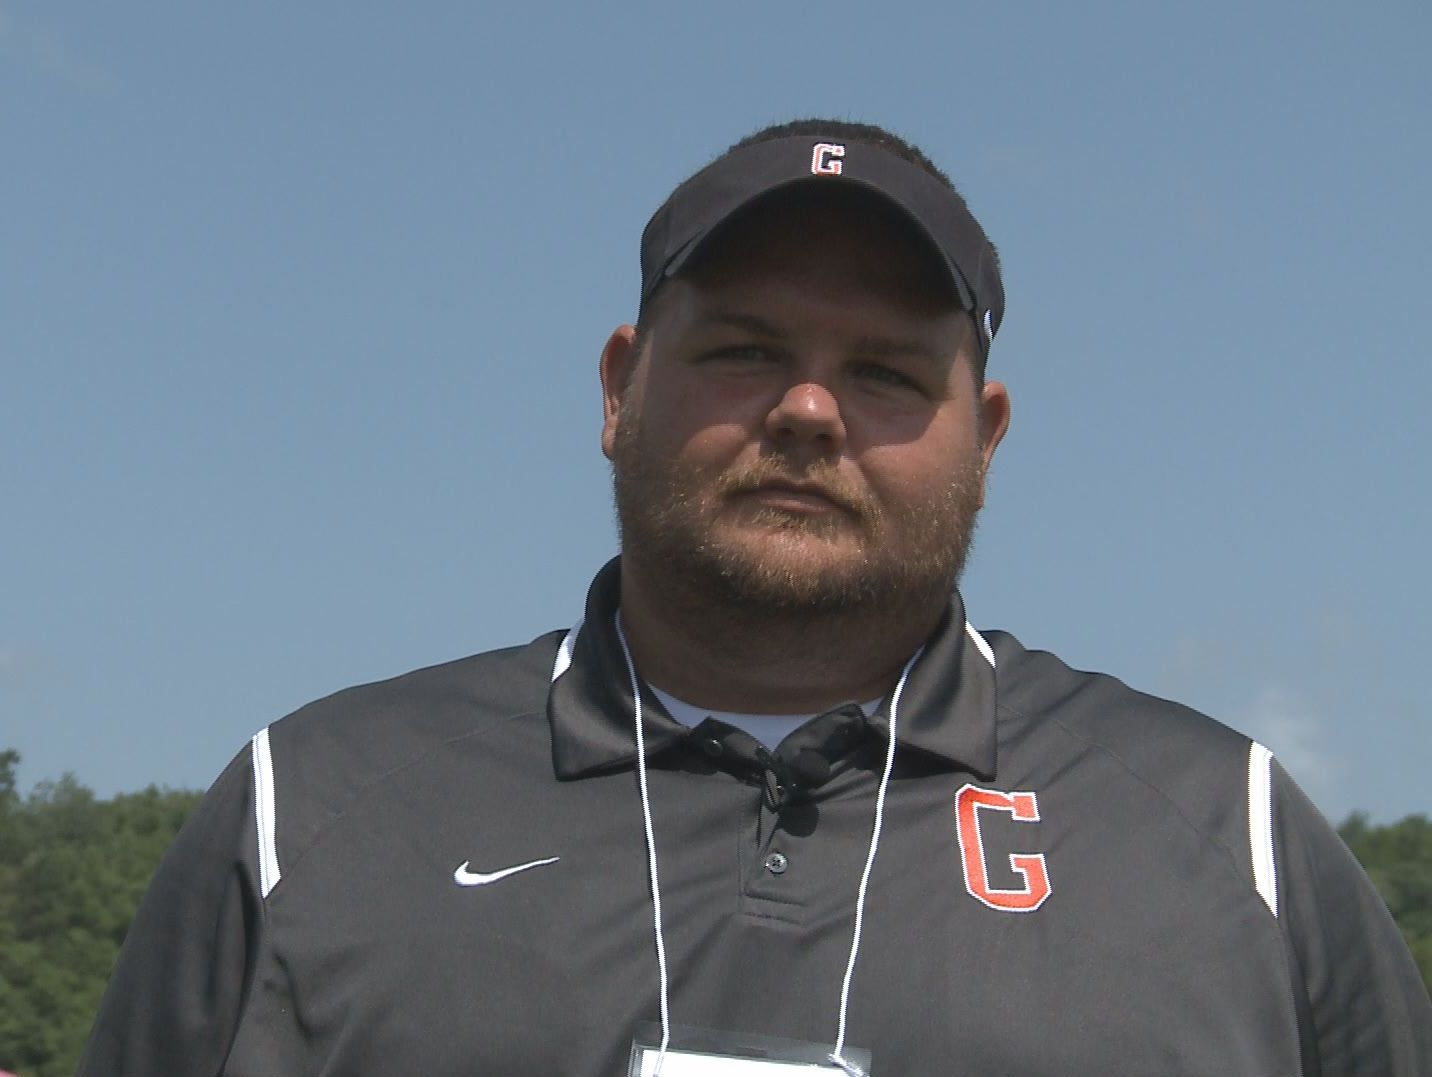 Lyles resigned from his position as head football coach at Greenback.